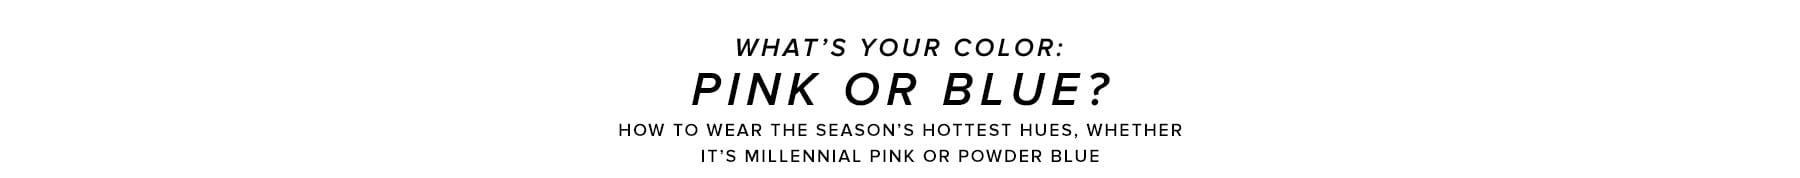 What's Your Color: Pink or Blue? How to wear the season's hottest hues, whether it's millennial pink or powder blue. Shop pretty in pink.